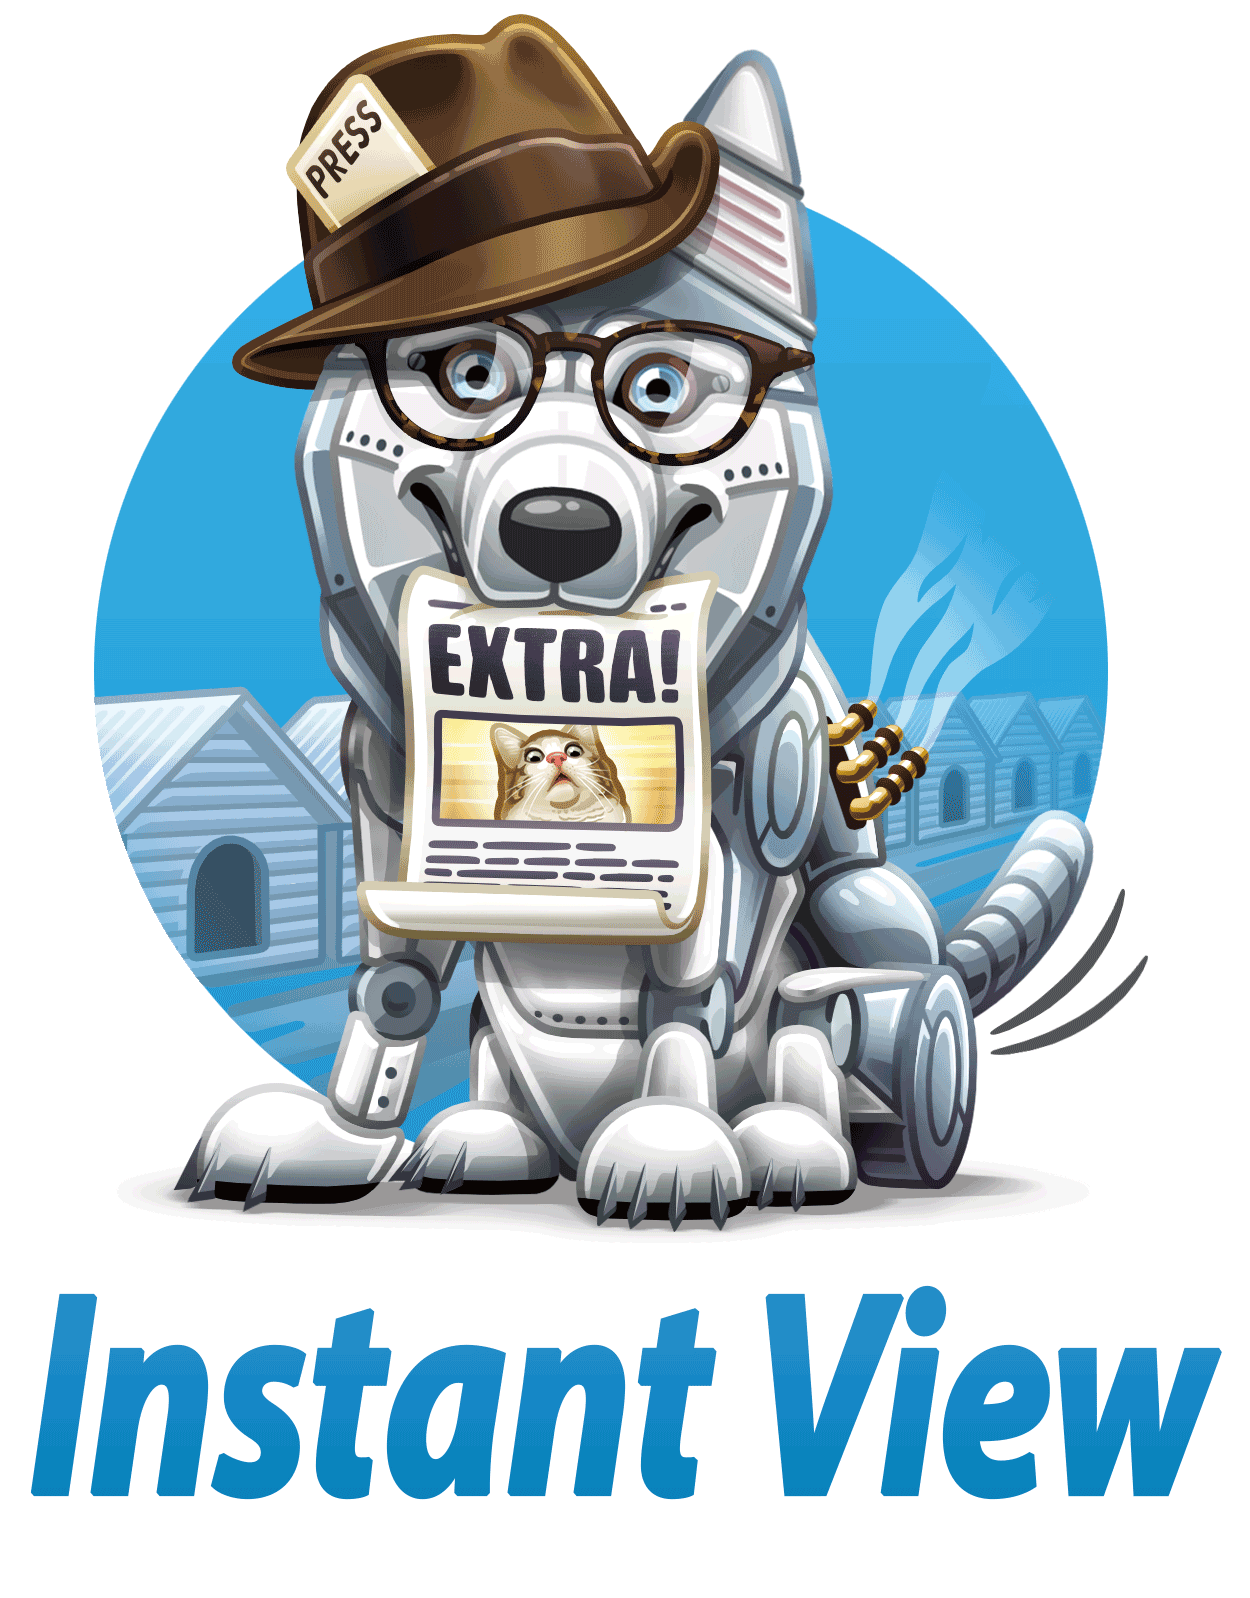 Contest - Instant View